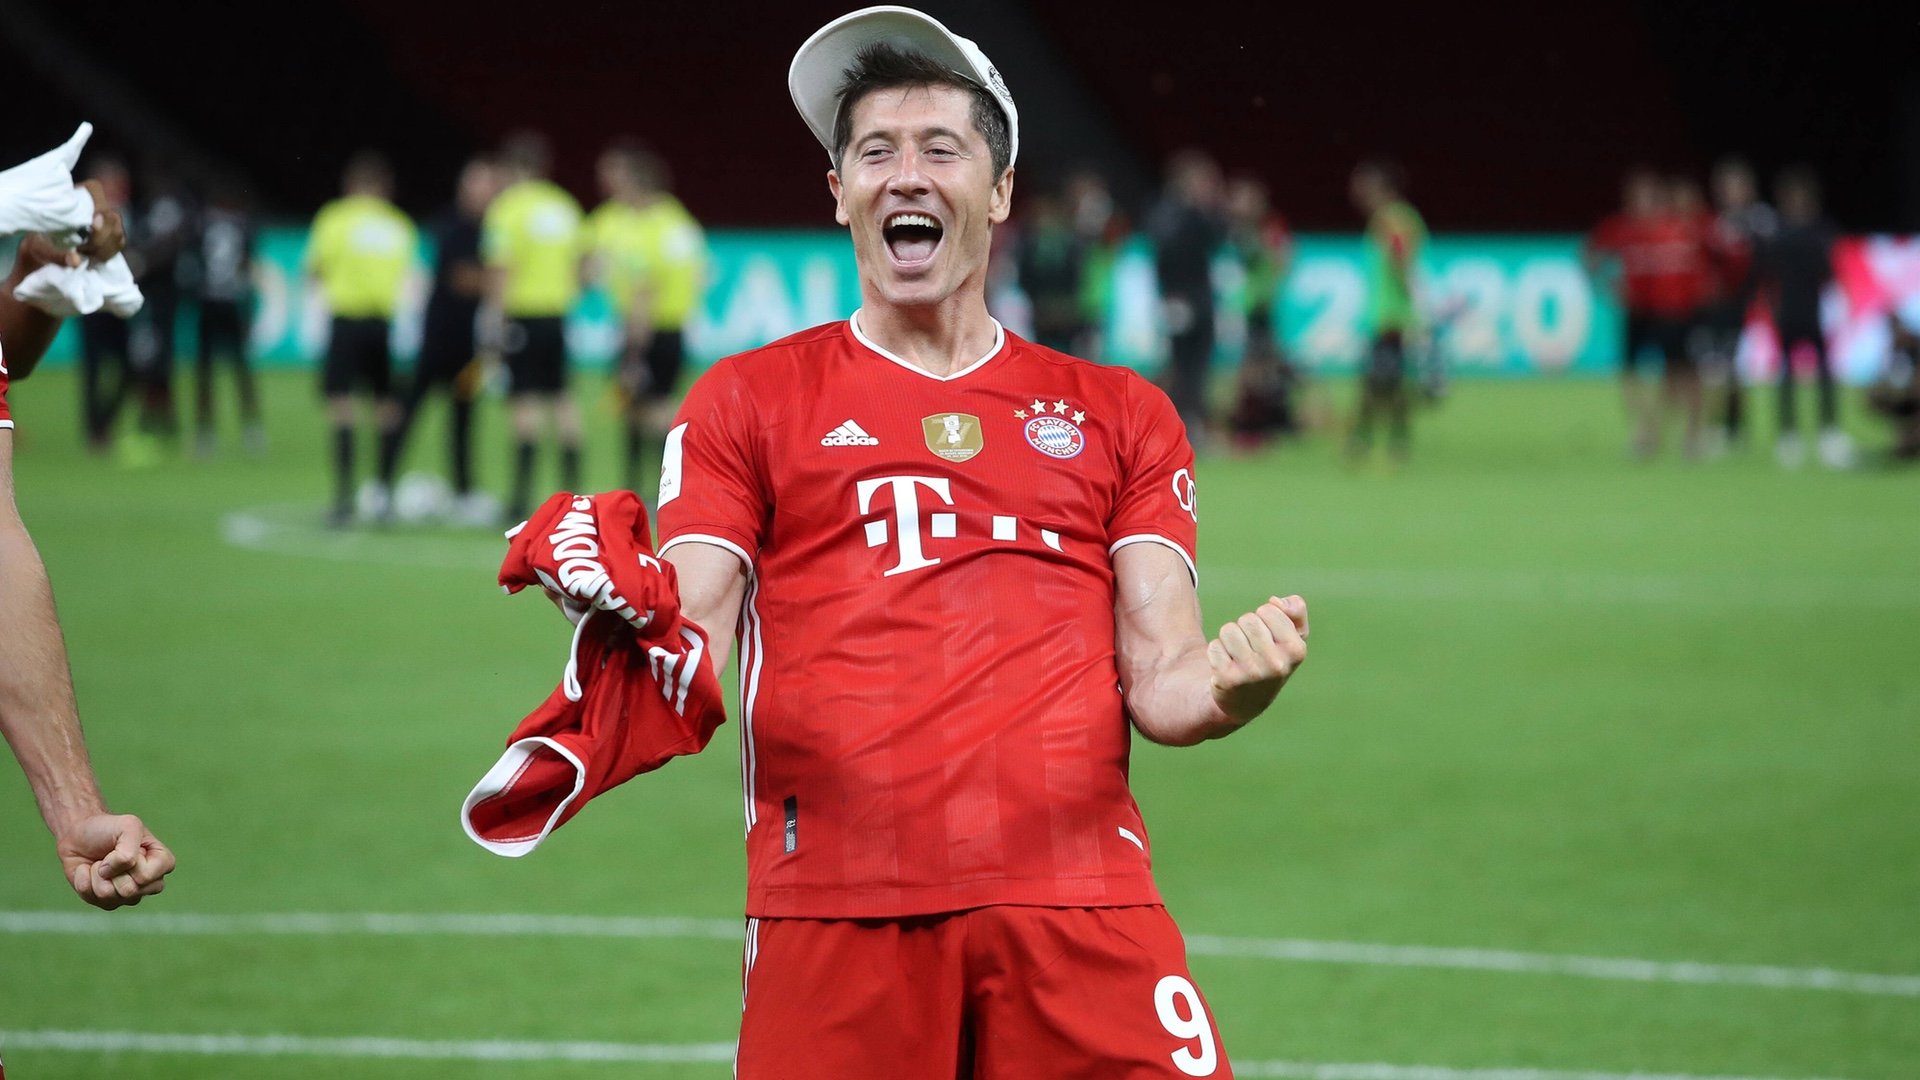 Bayern Munich, Lewandowski raconte son but contre Leverkusen